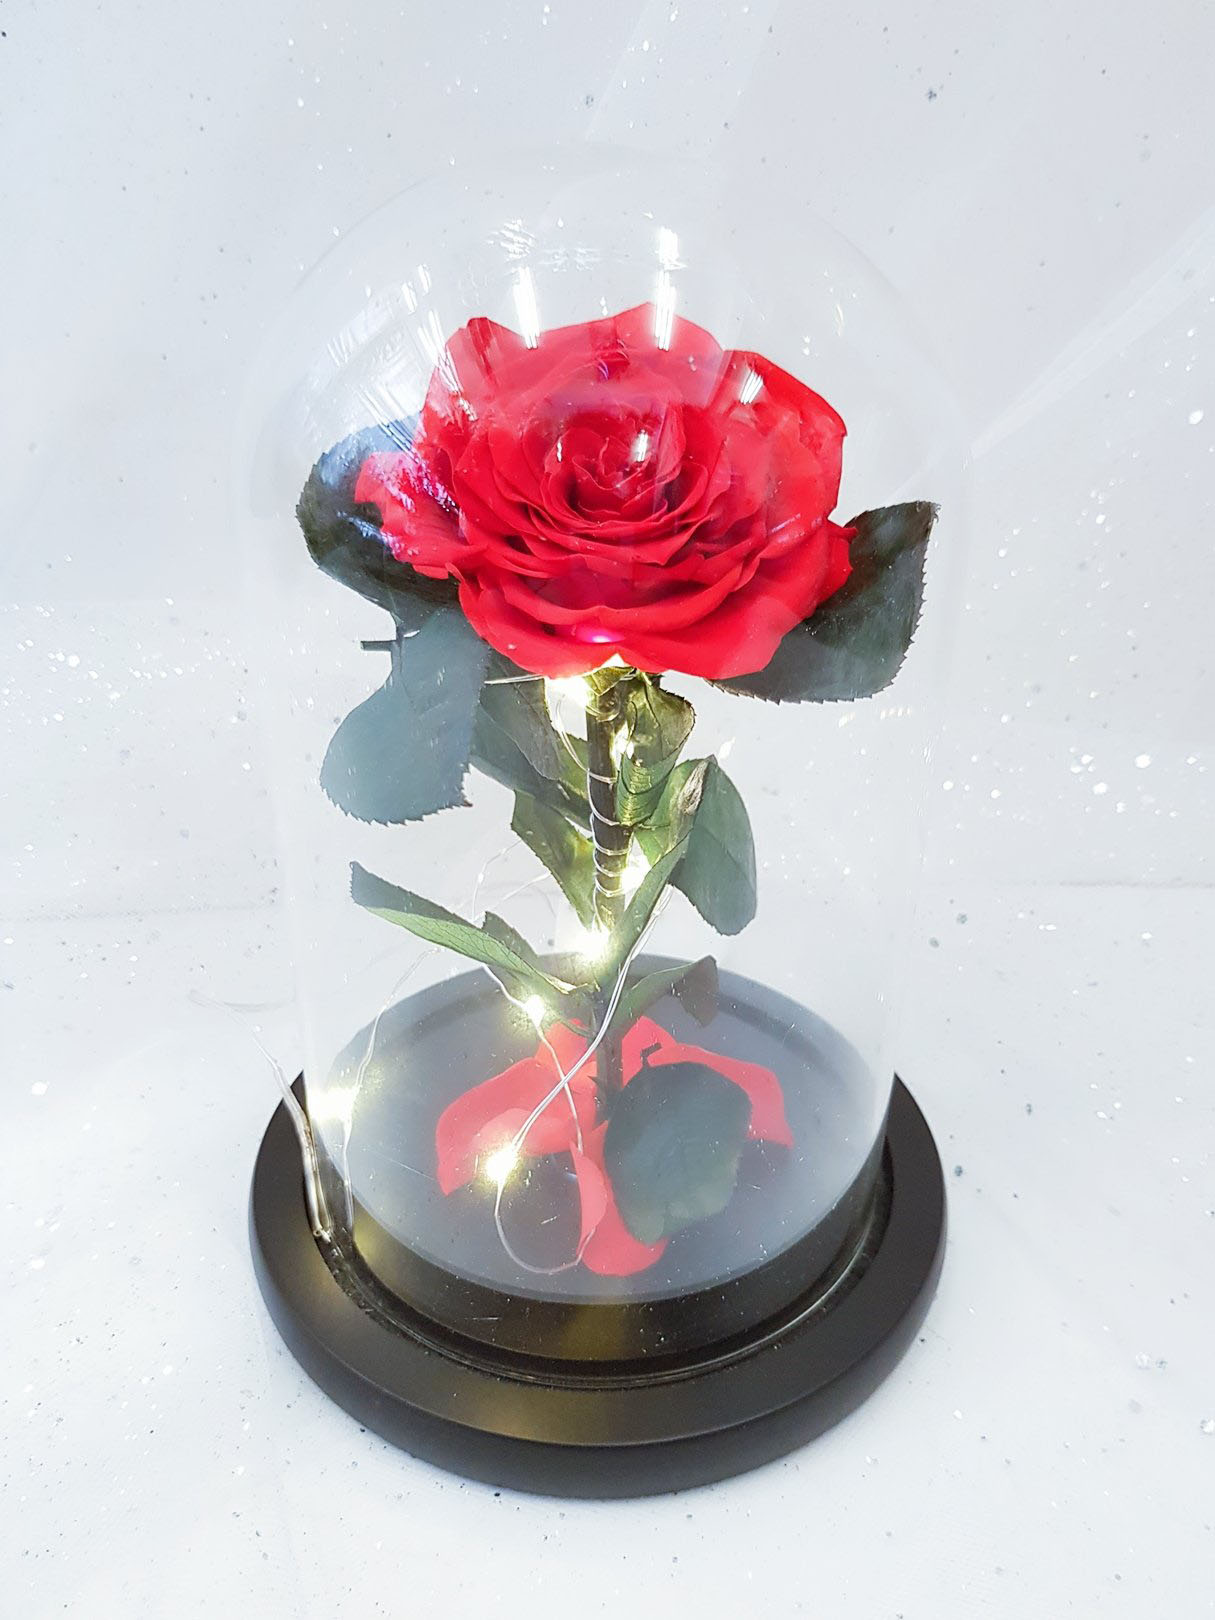 Beauty And The Beast Rose With LED Light In Glass Dome